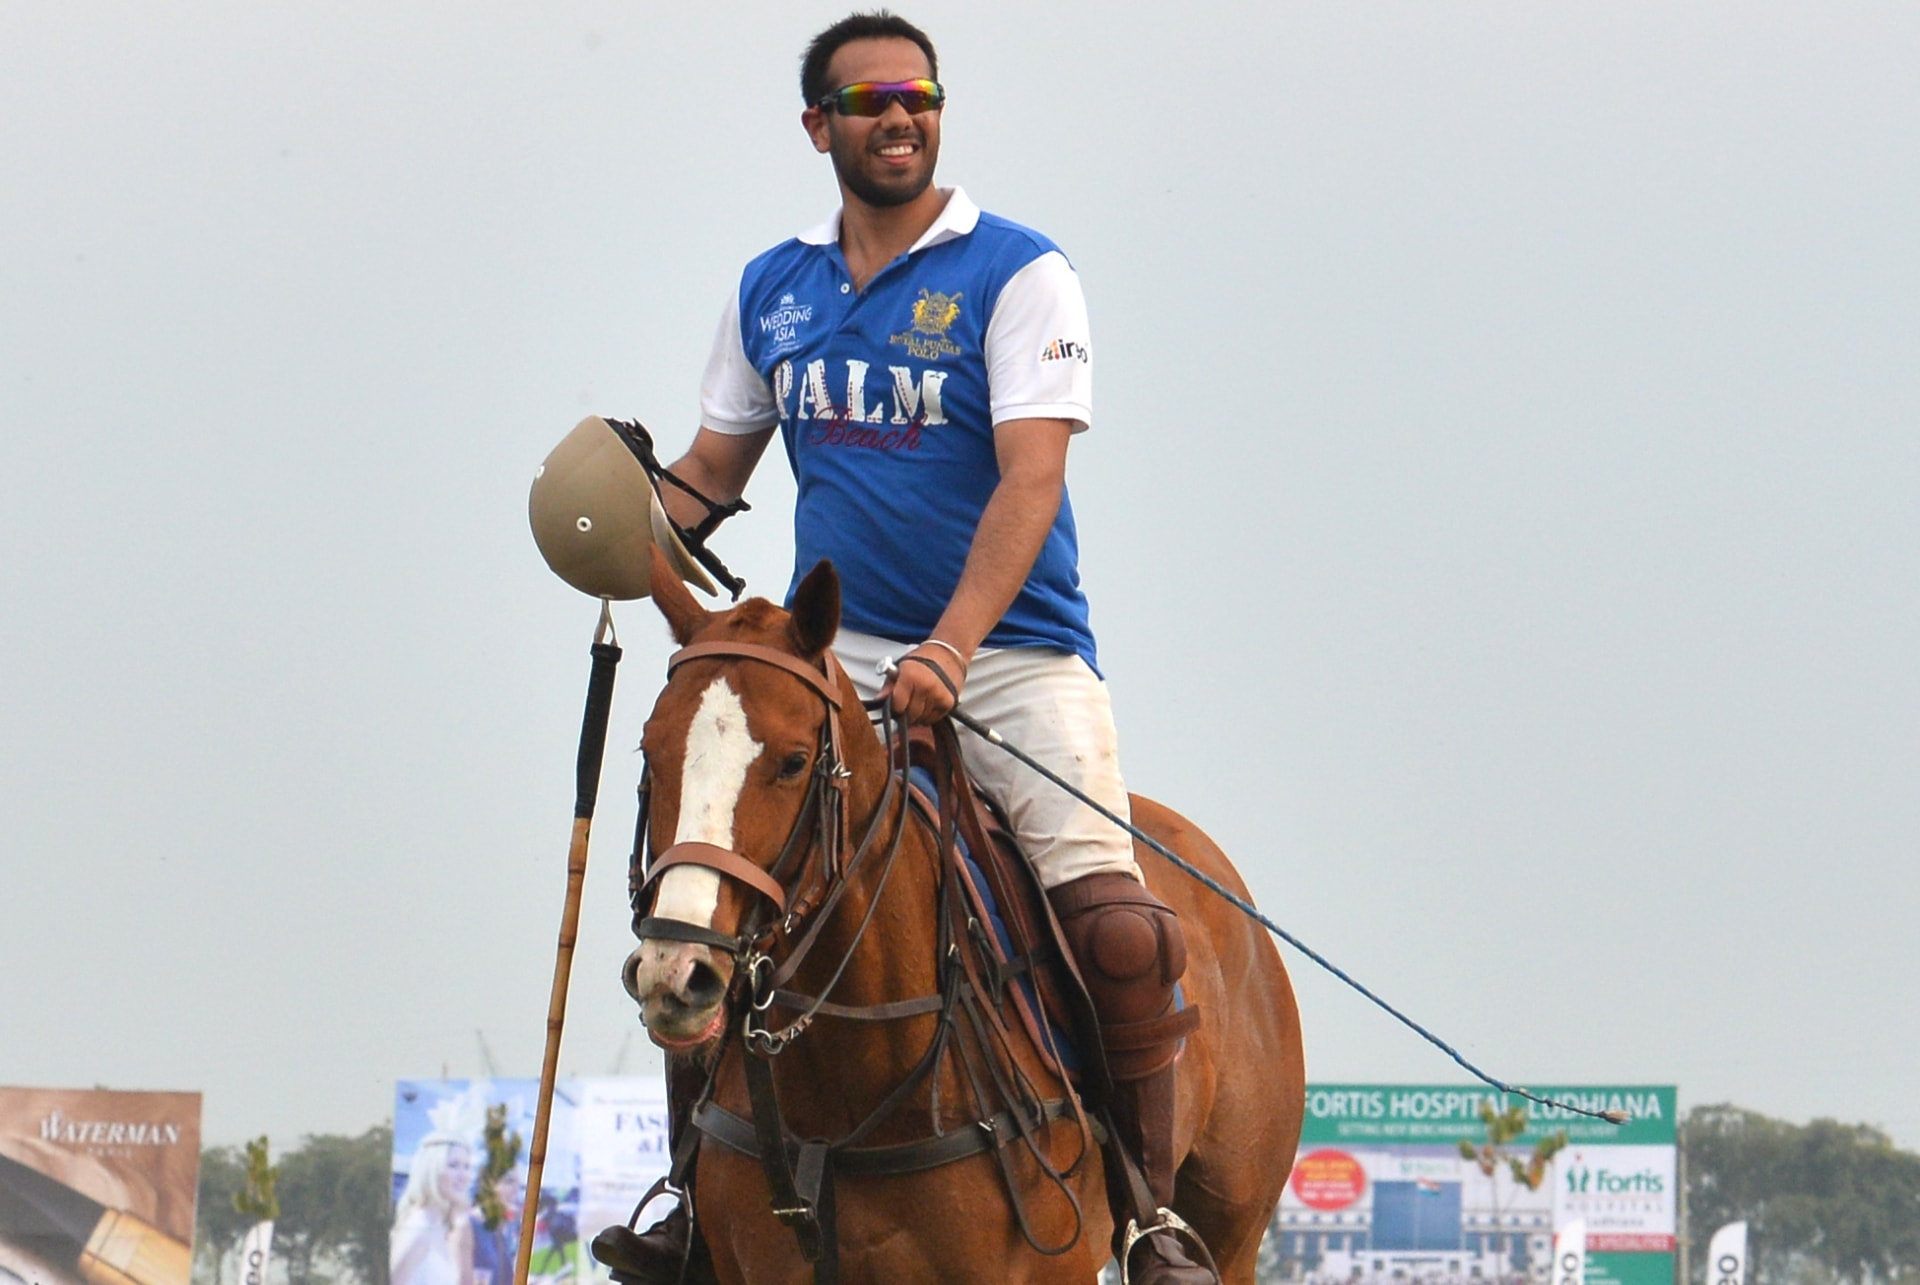 lt-anmol-singh-warraich-joins-61st-cavalry-la-polo (1)